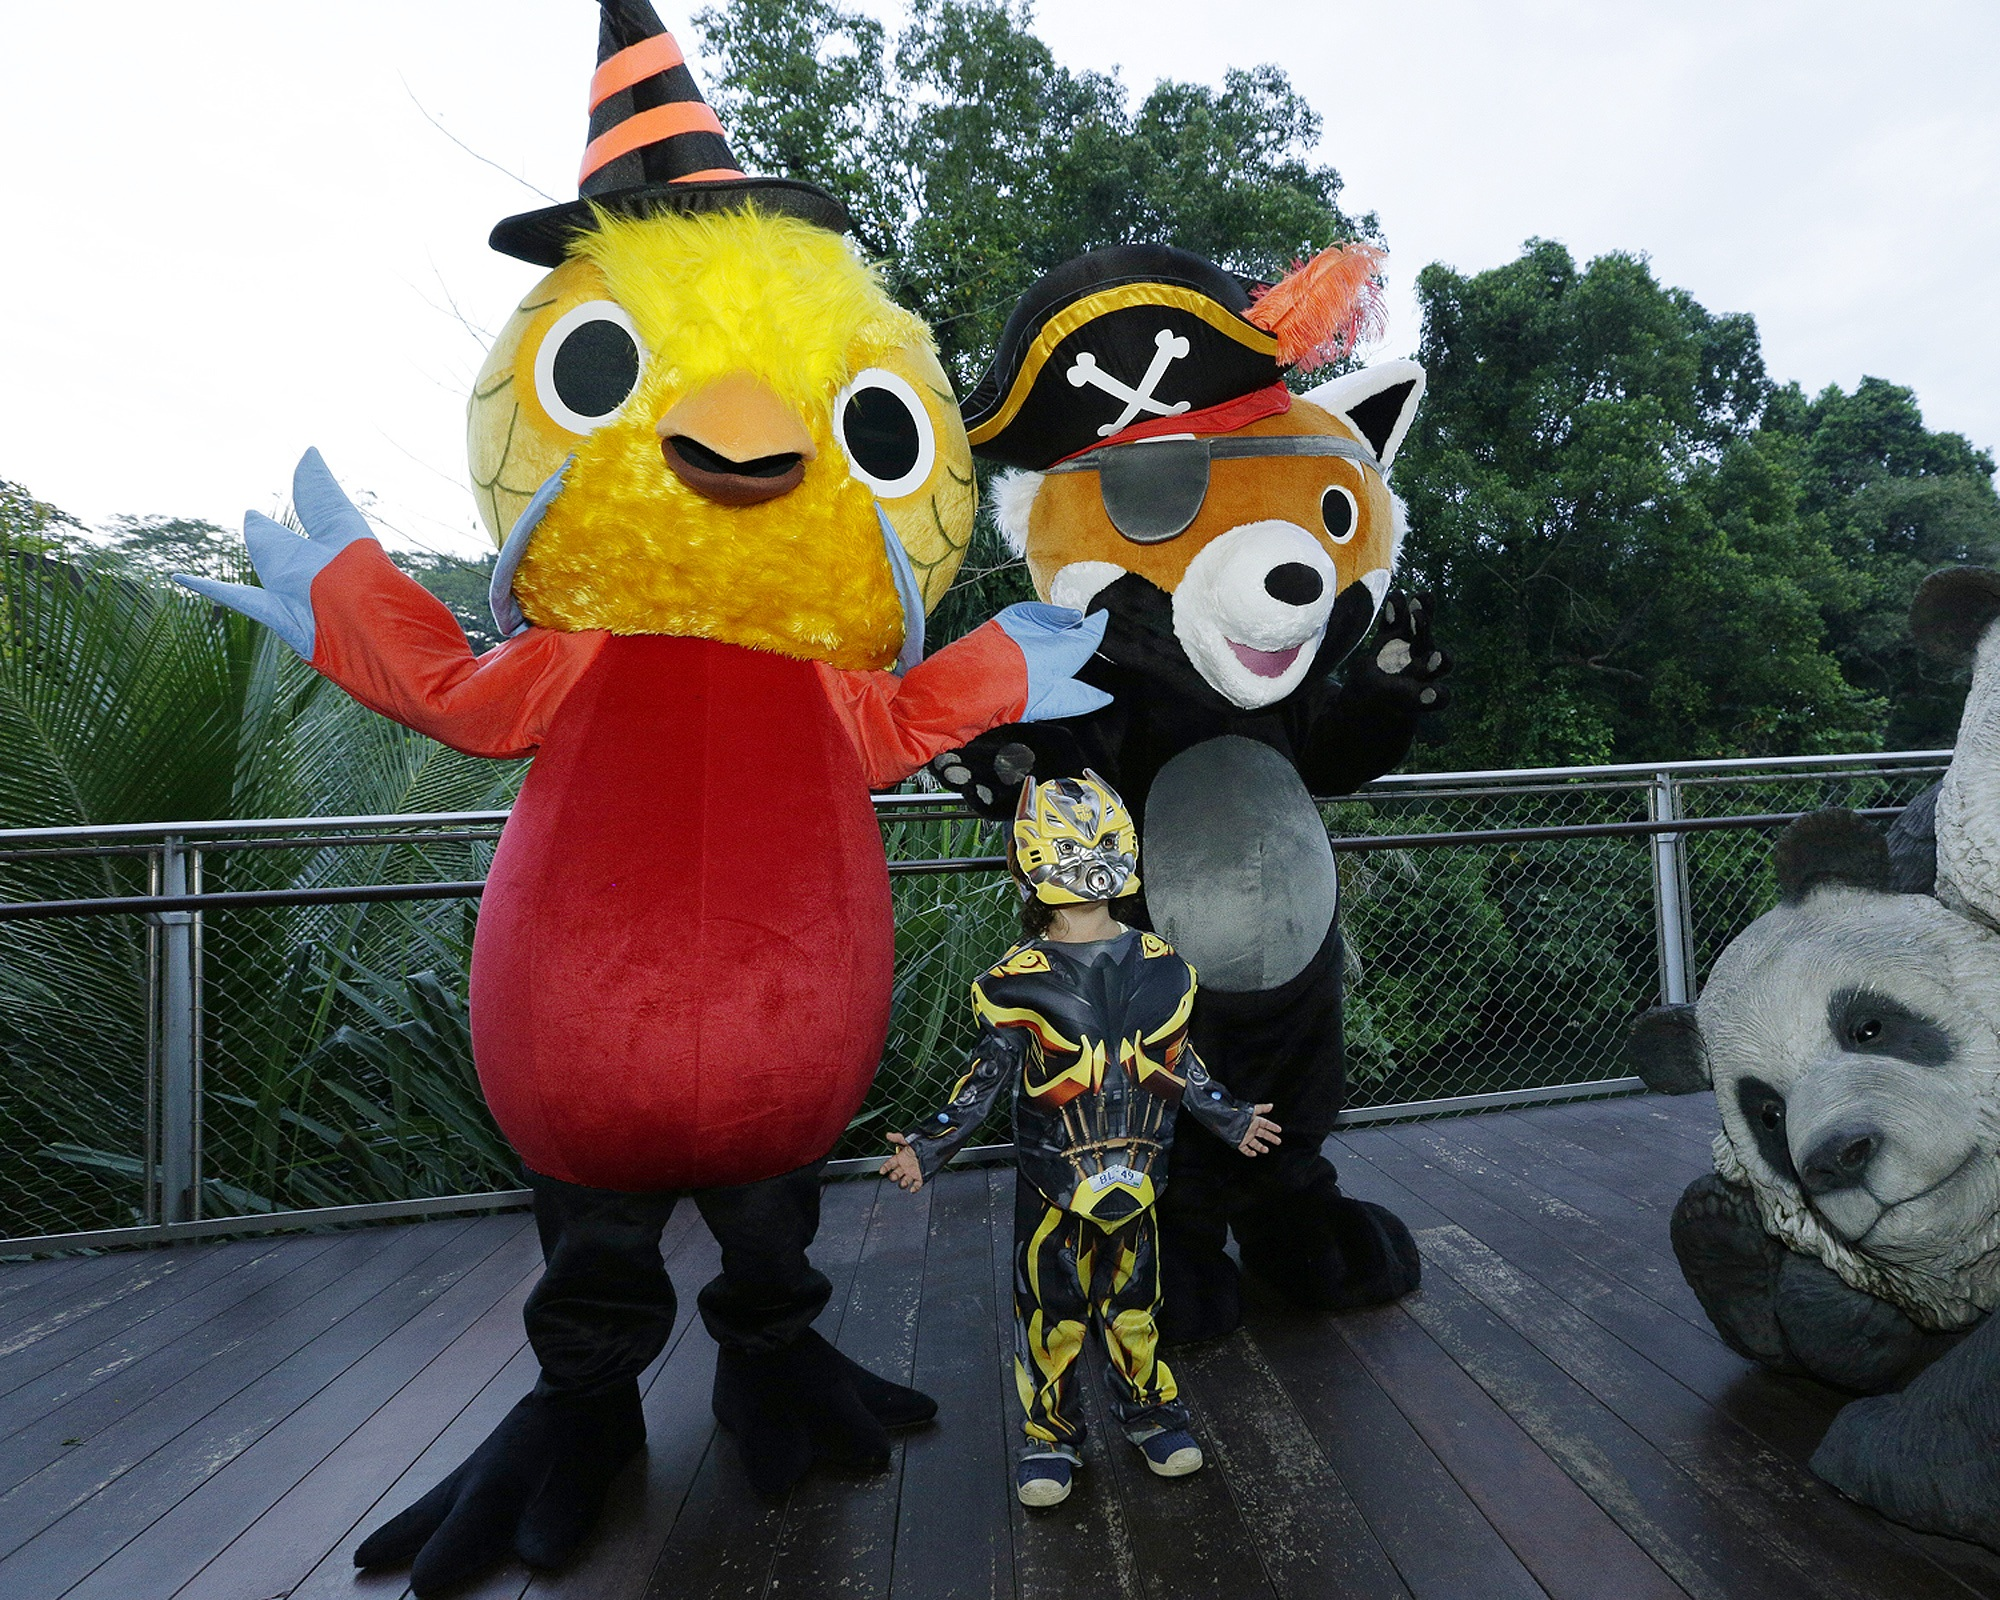 Safari Boo opening night - kid with golden pheasant & red panda mascots